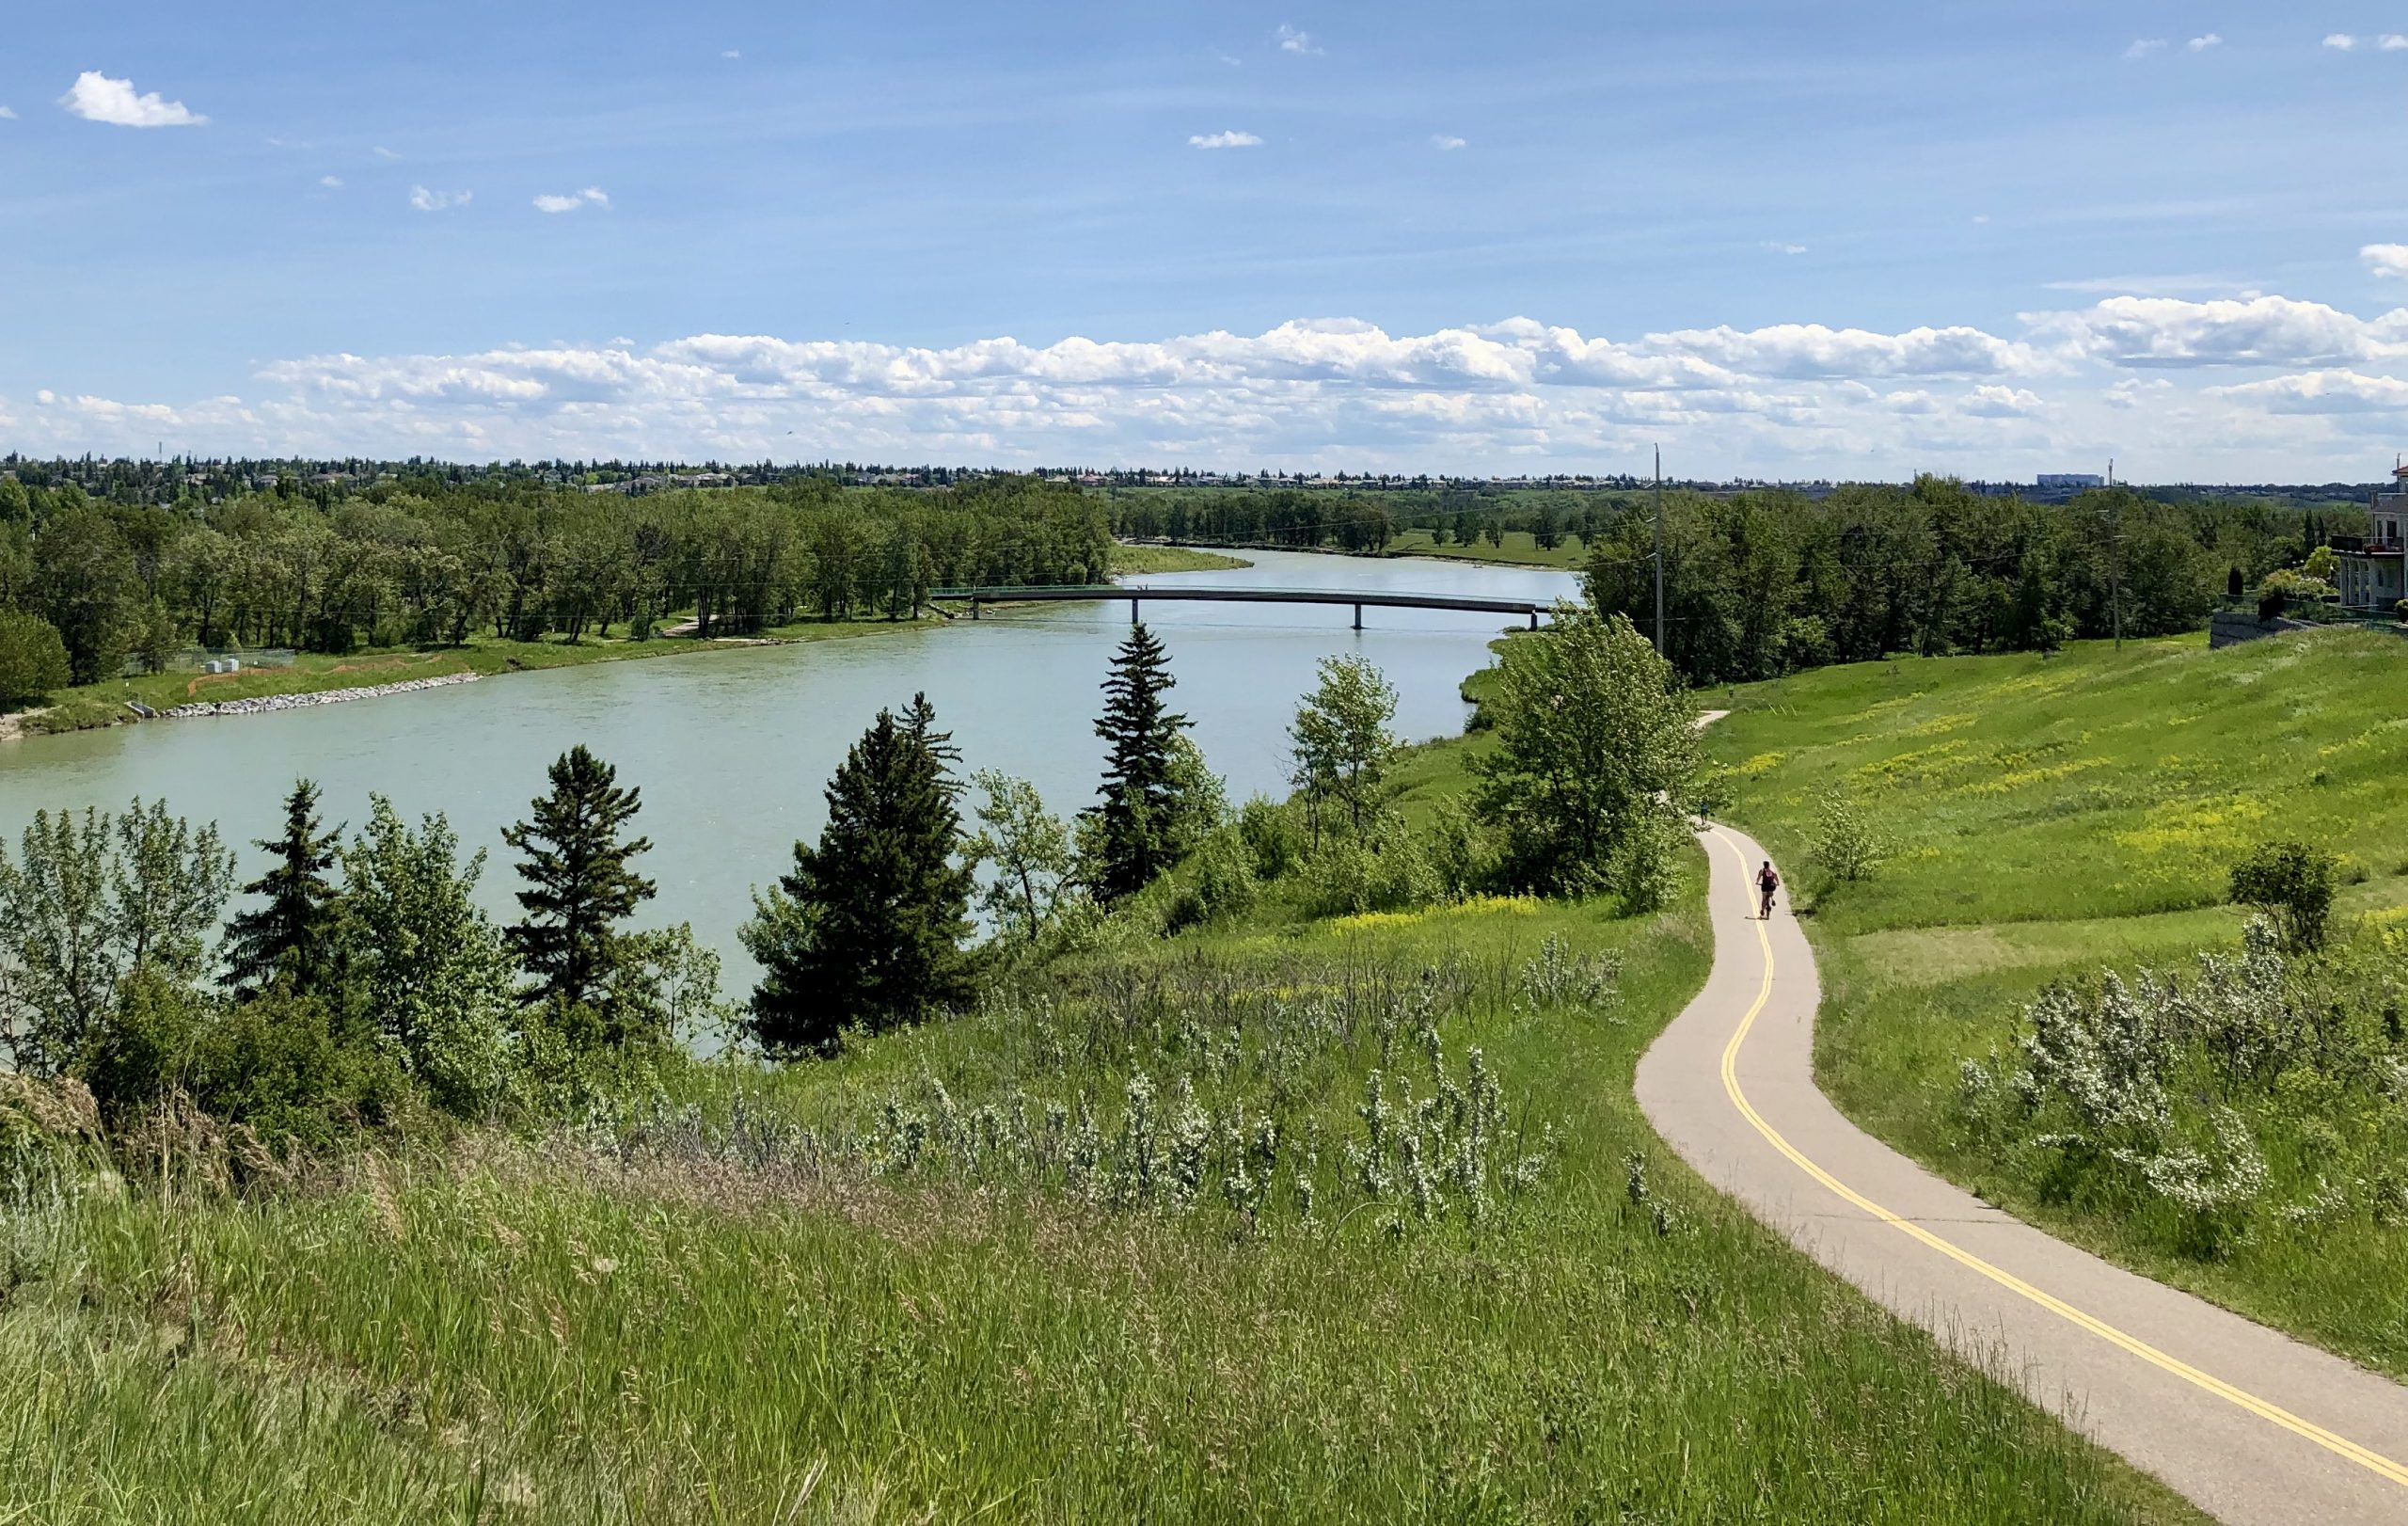 5 of the Best Bike Paths in Calgary, Alberta via @outandacross